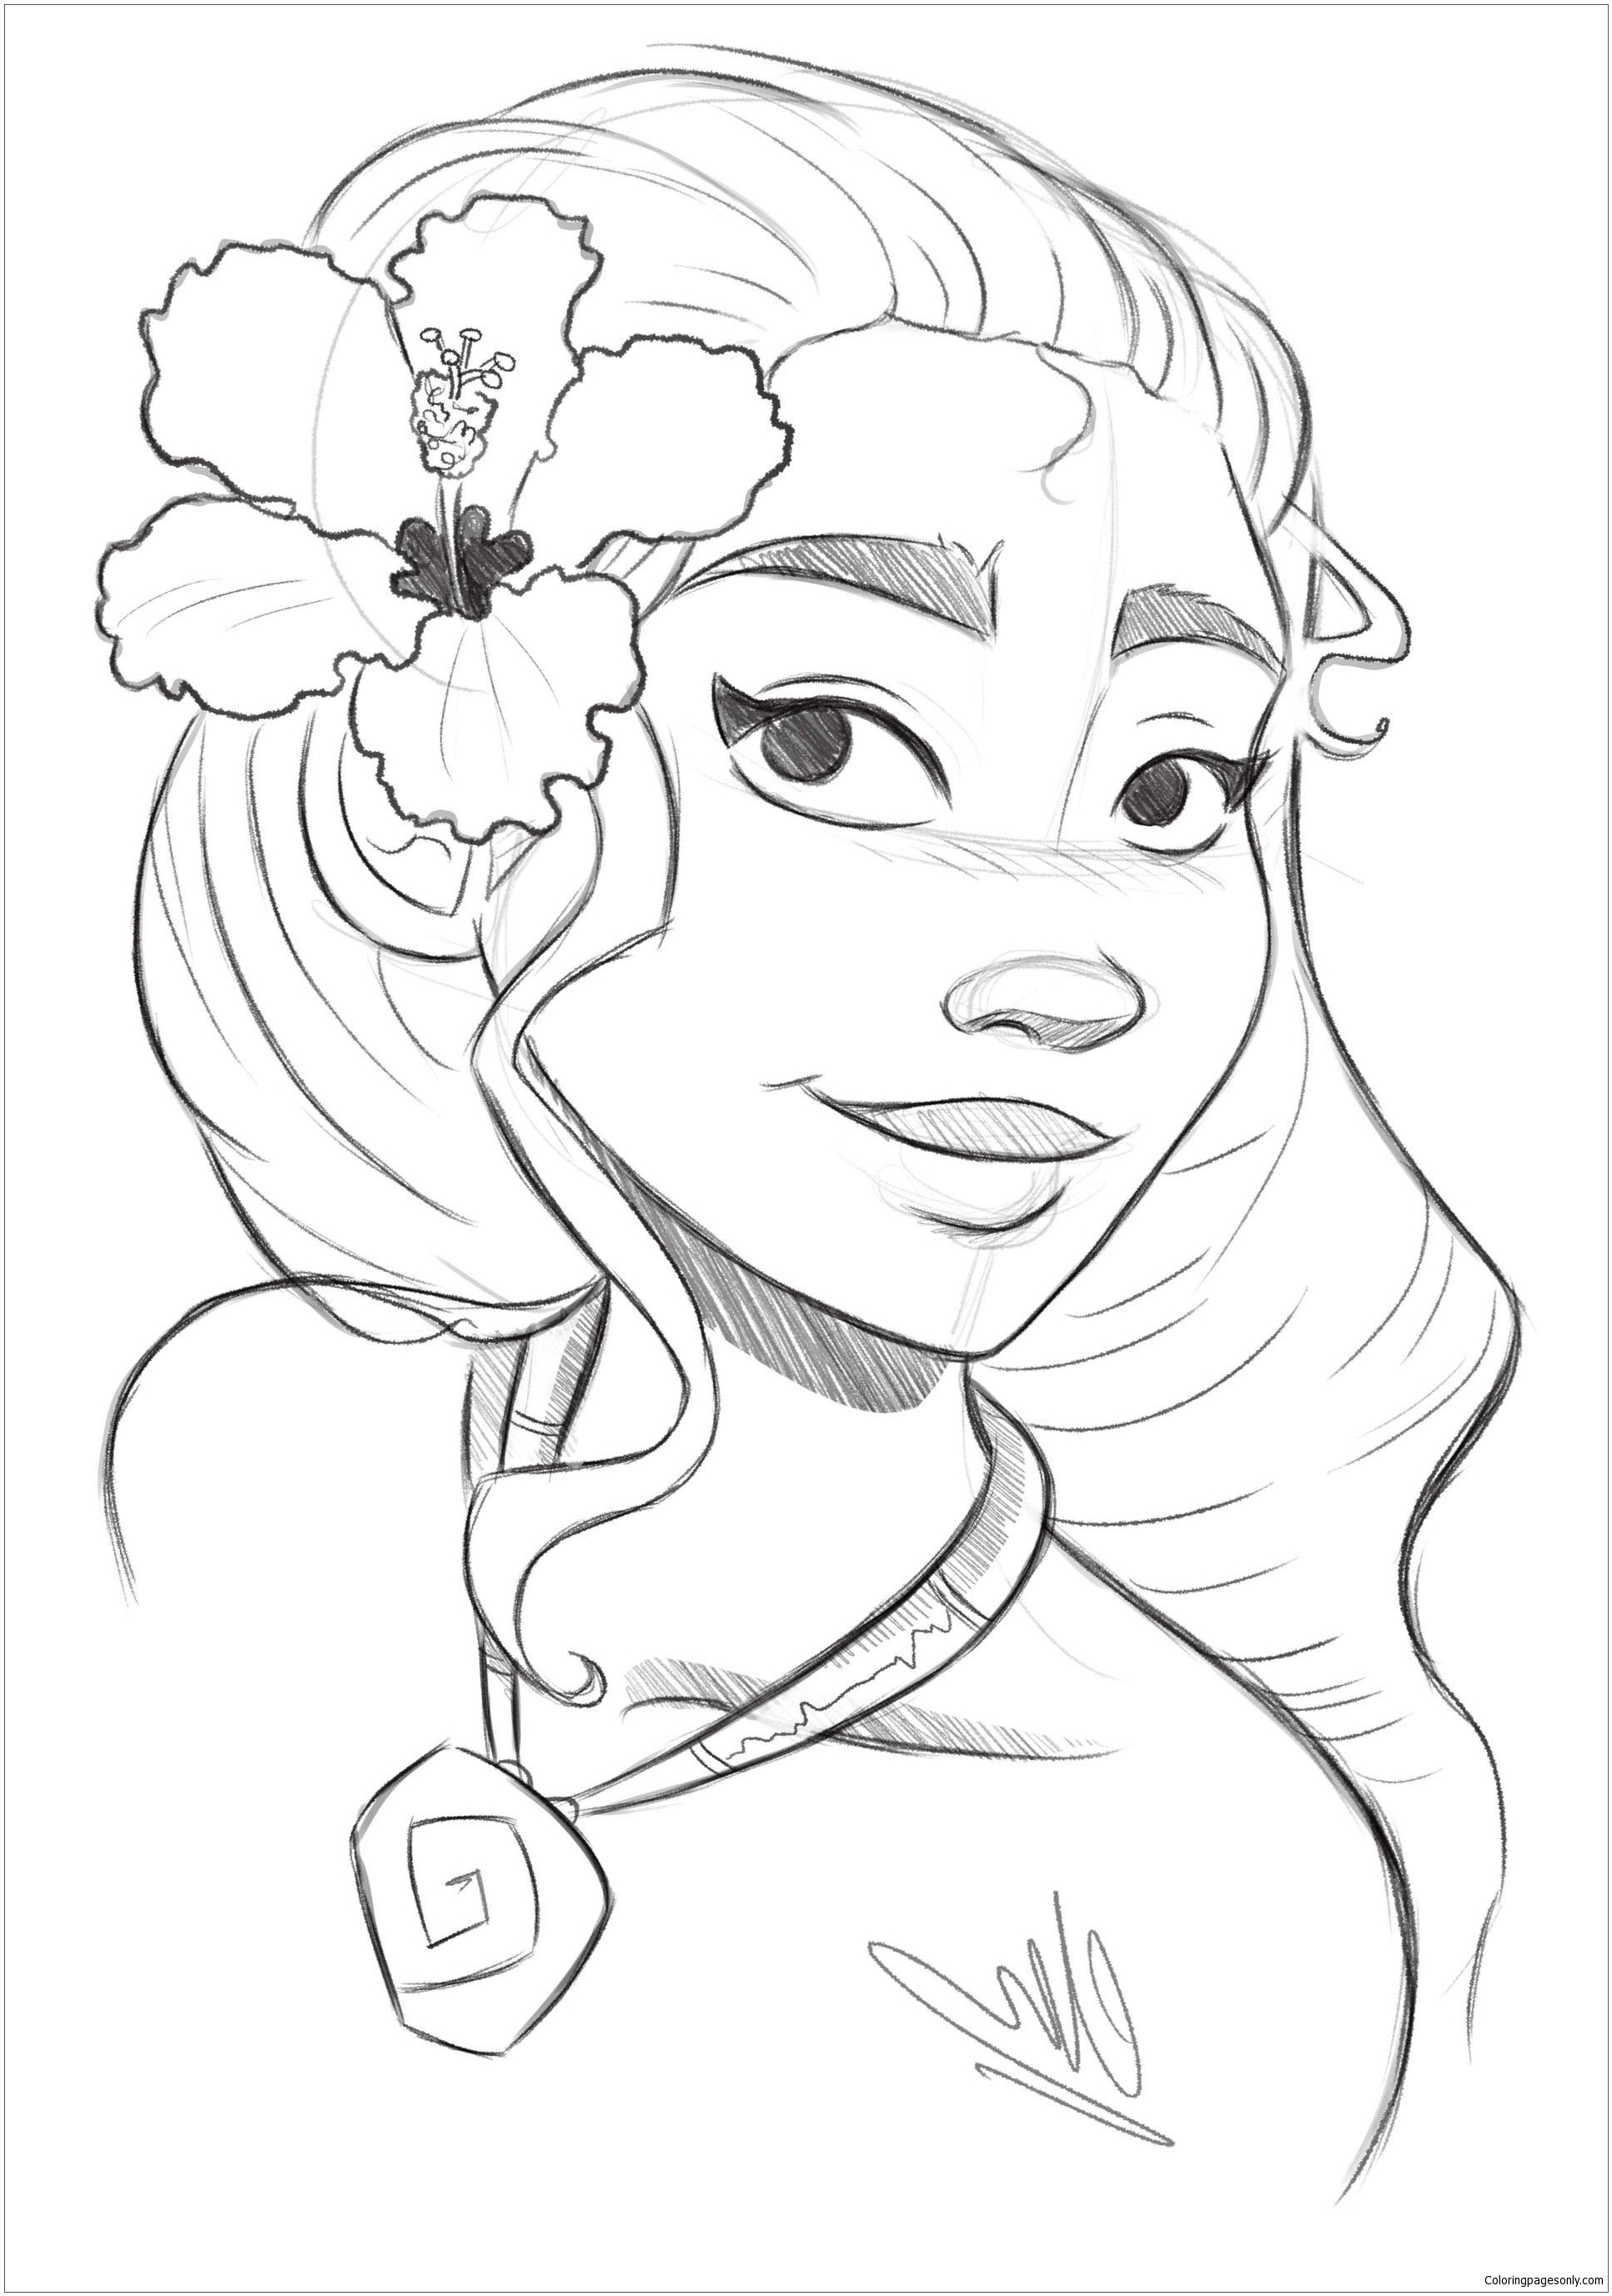 Princess Moana 2 Coloring Page